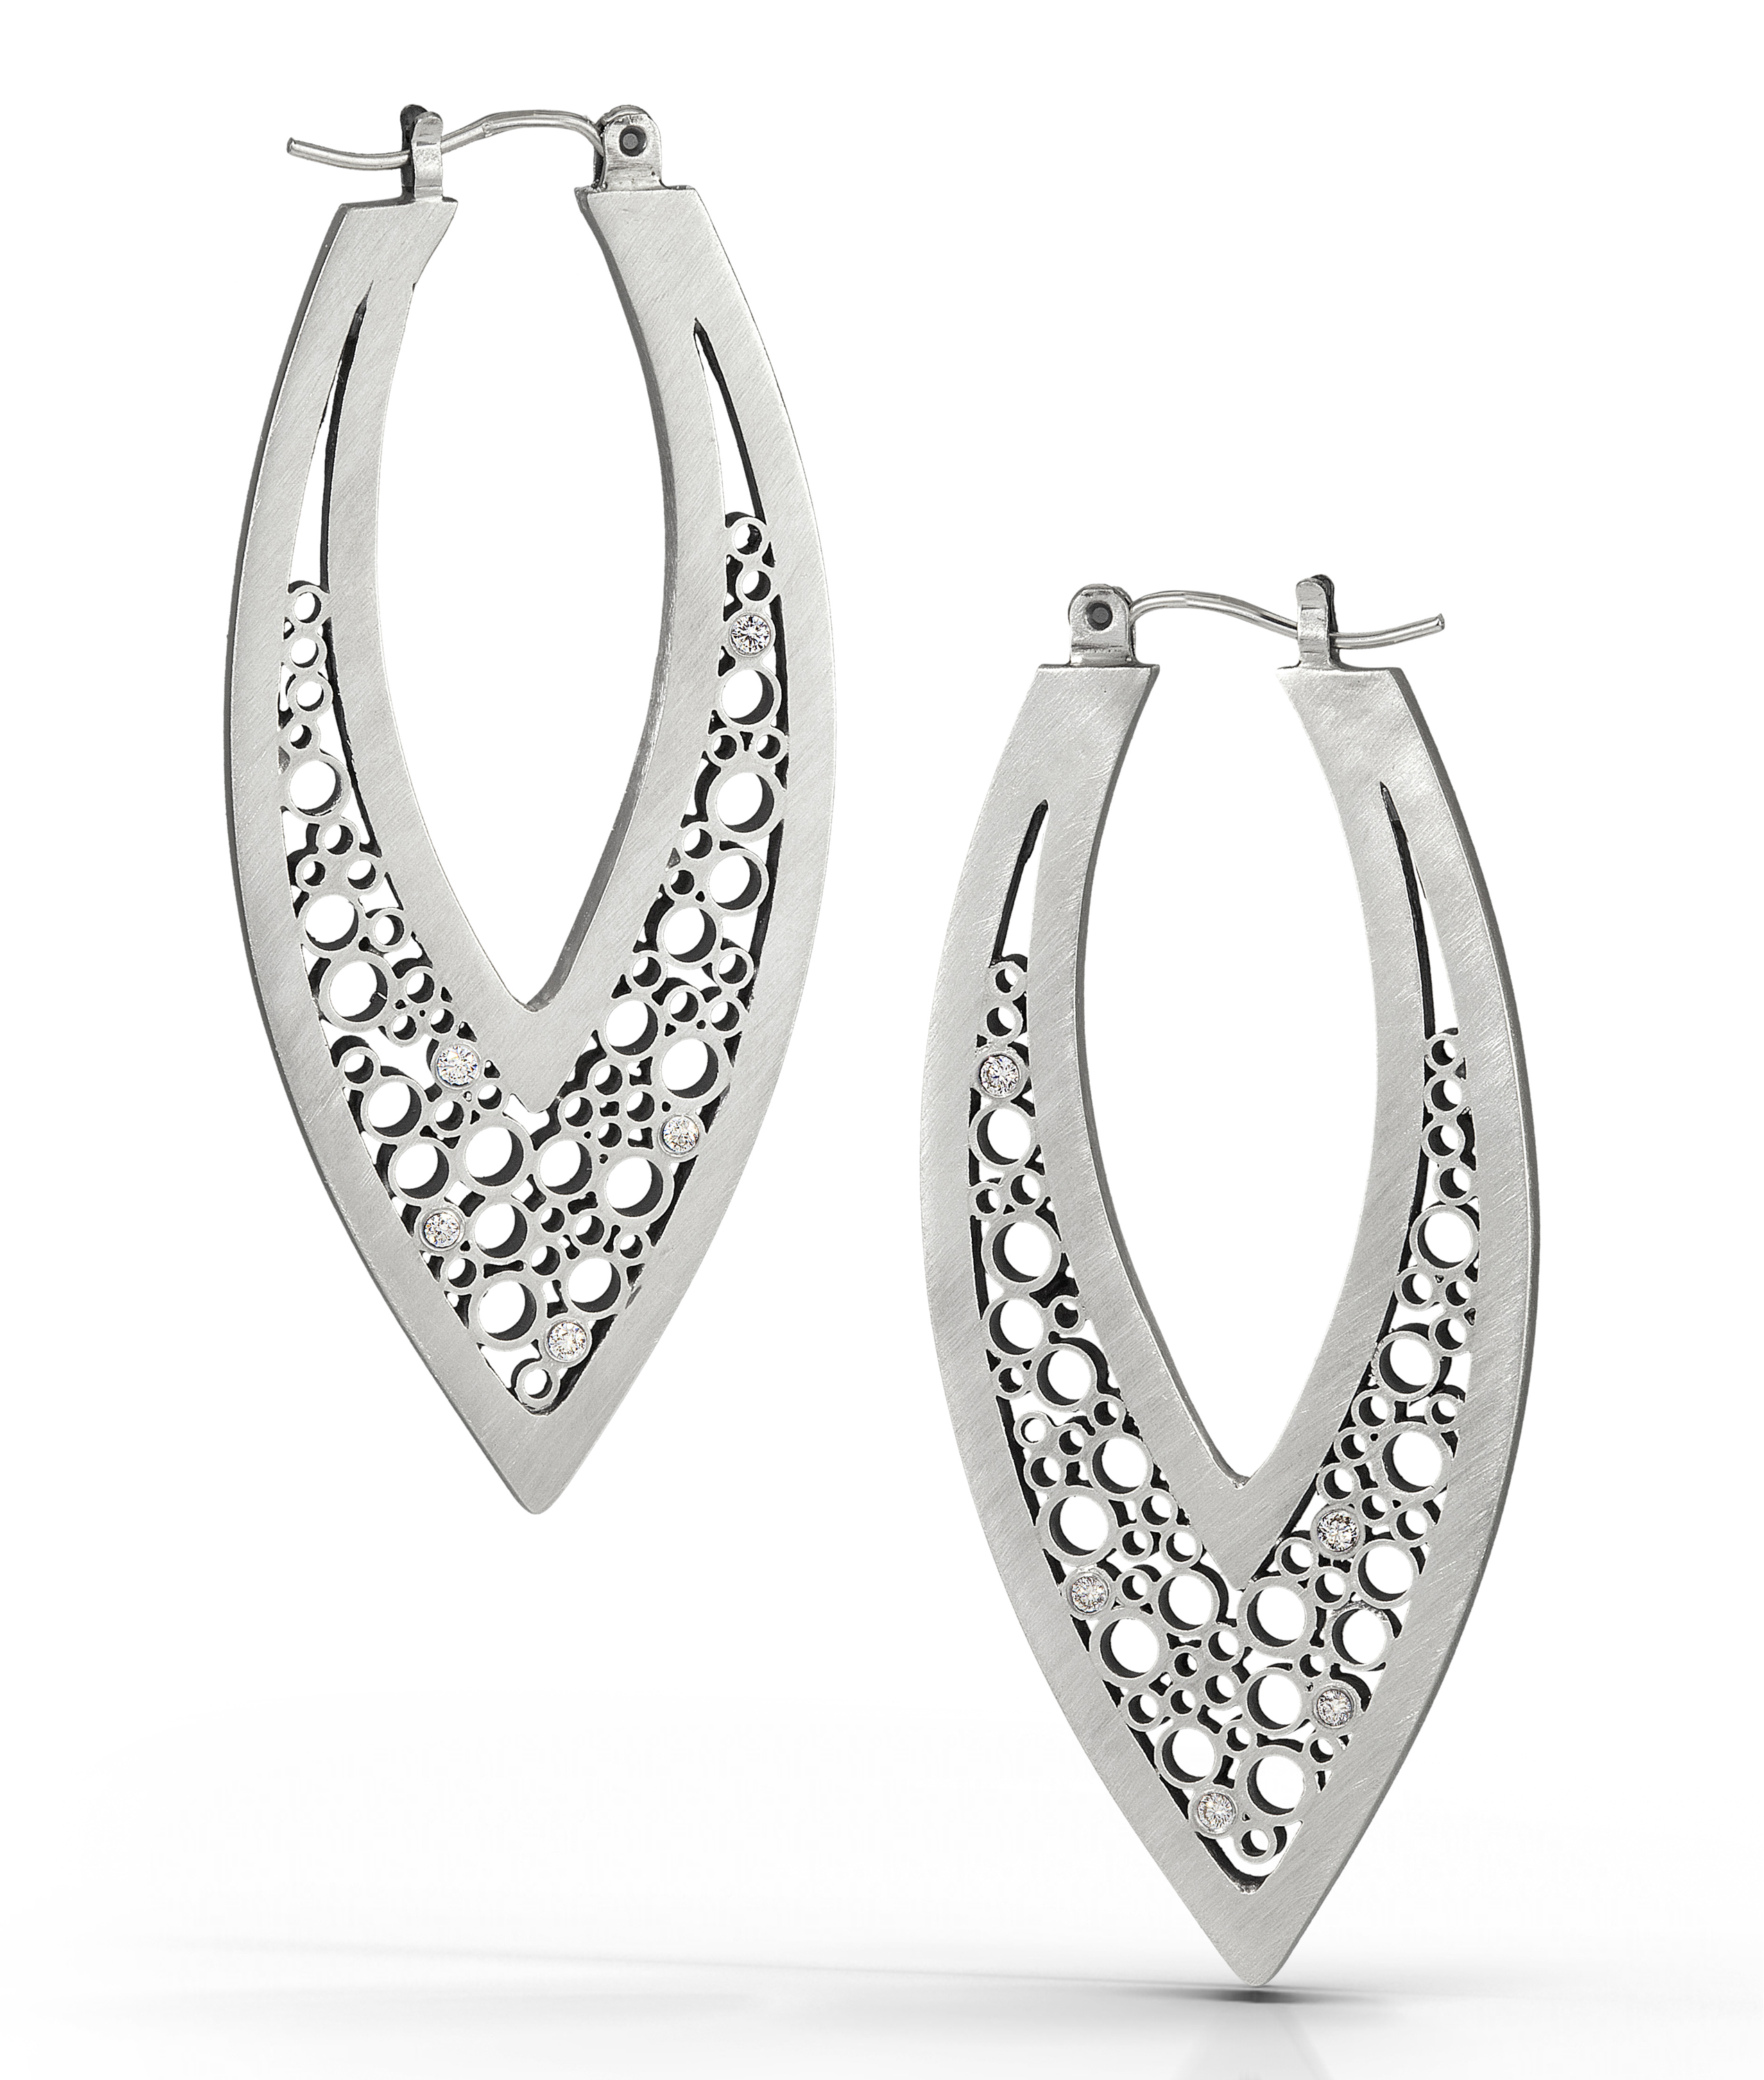 Belle Brooke Designs Luz earrings | JCK On Your Market